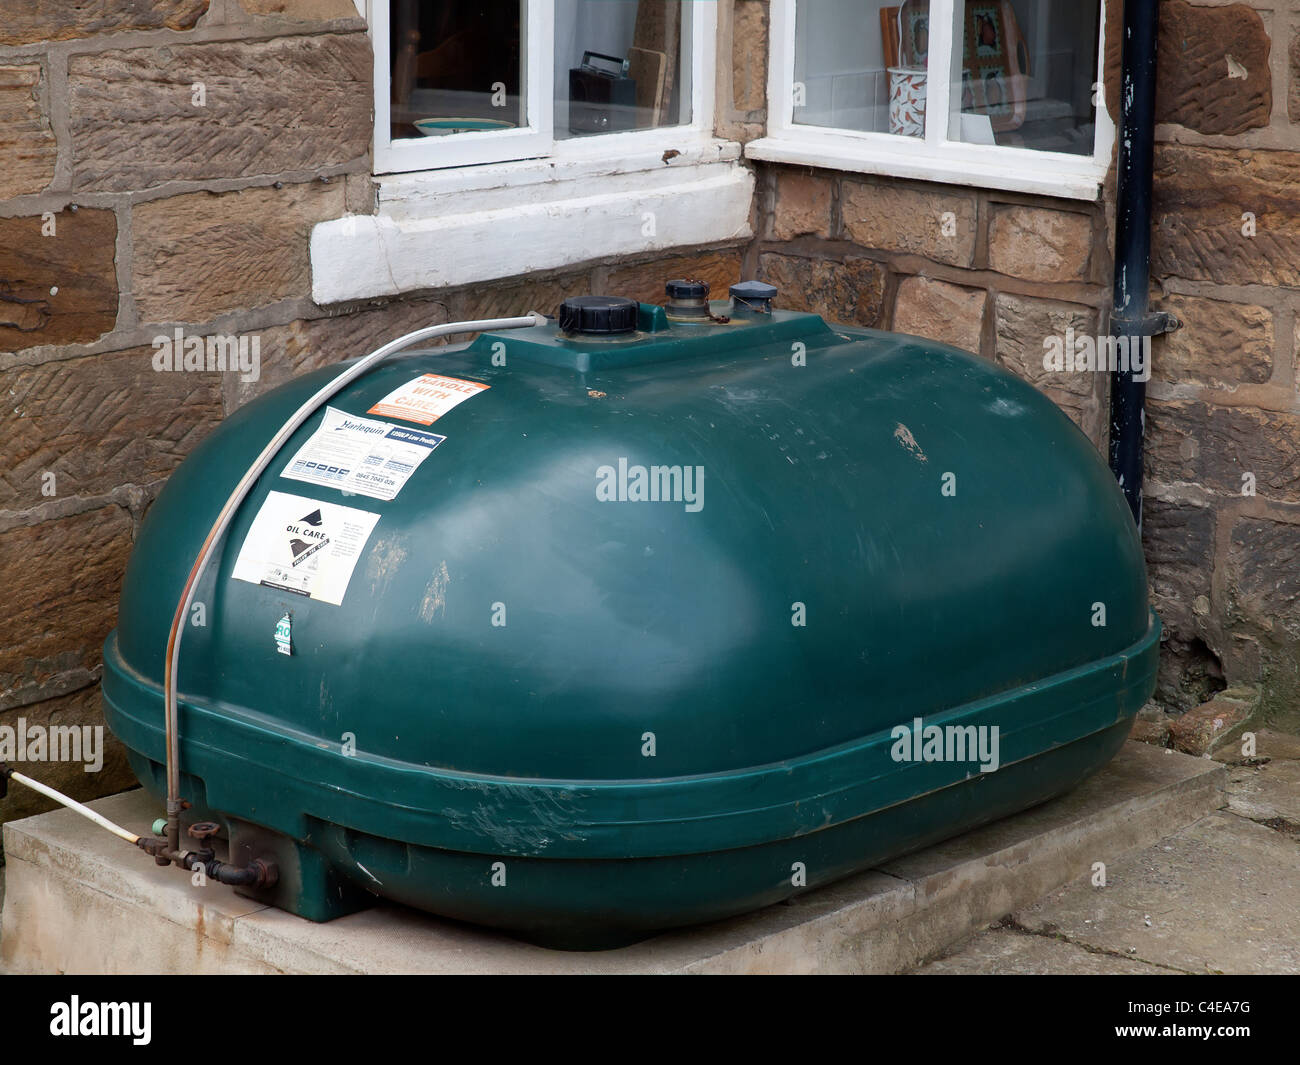 Central Heating Oil Stock Photos & Central Heating Oil Stock Images ...